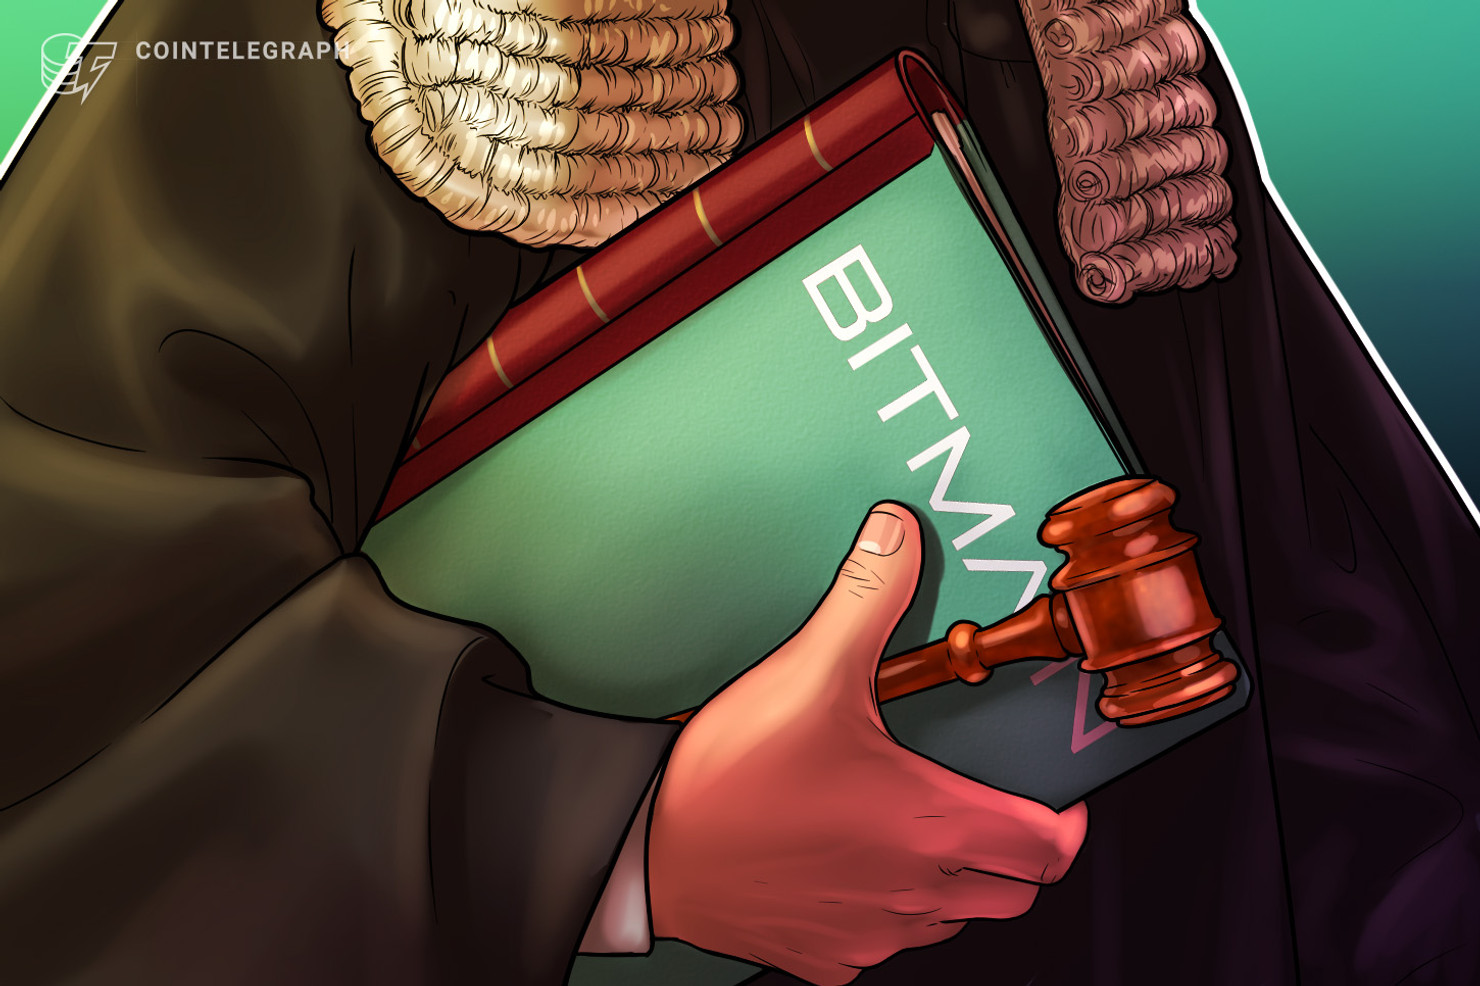 Bitmain Co-Founder Launches Another Lawsuit to Regain CEO Role